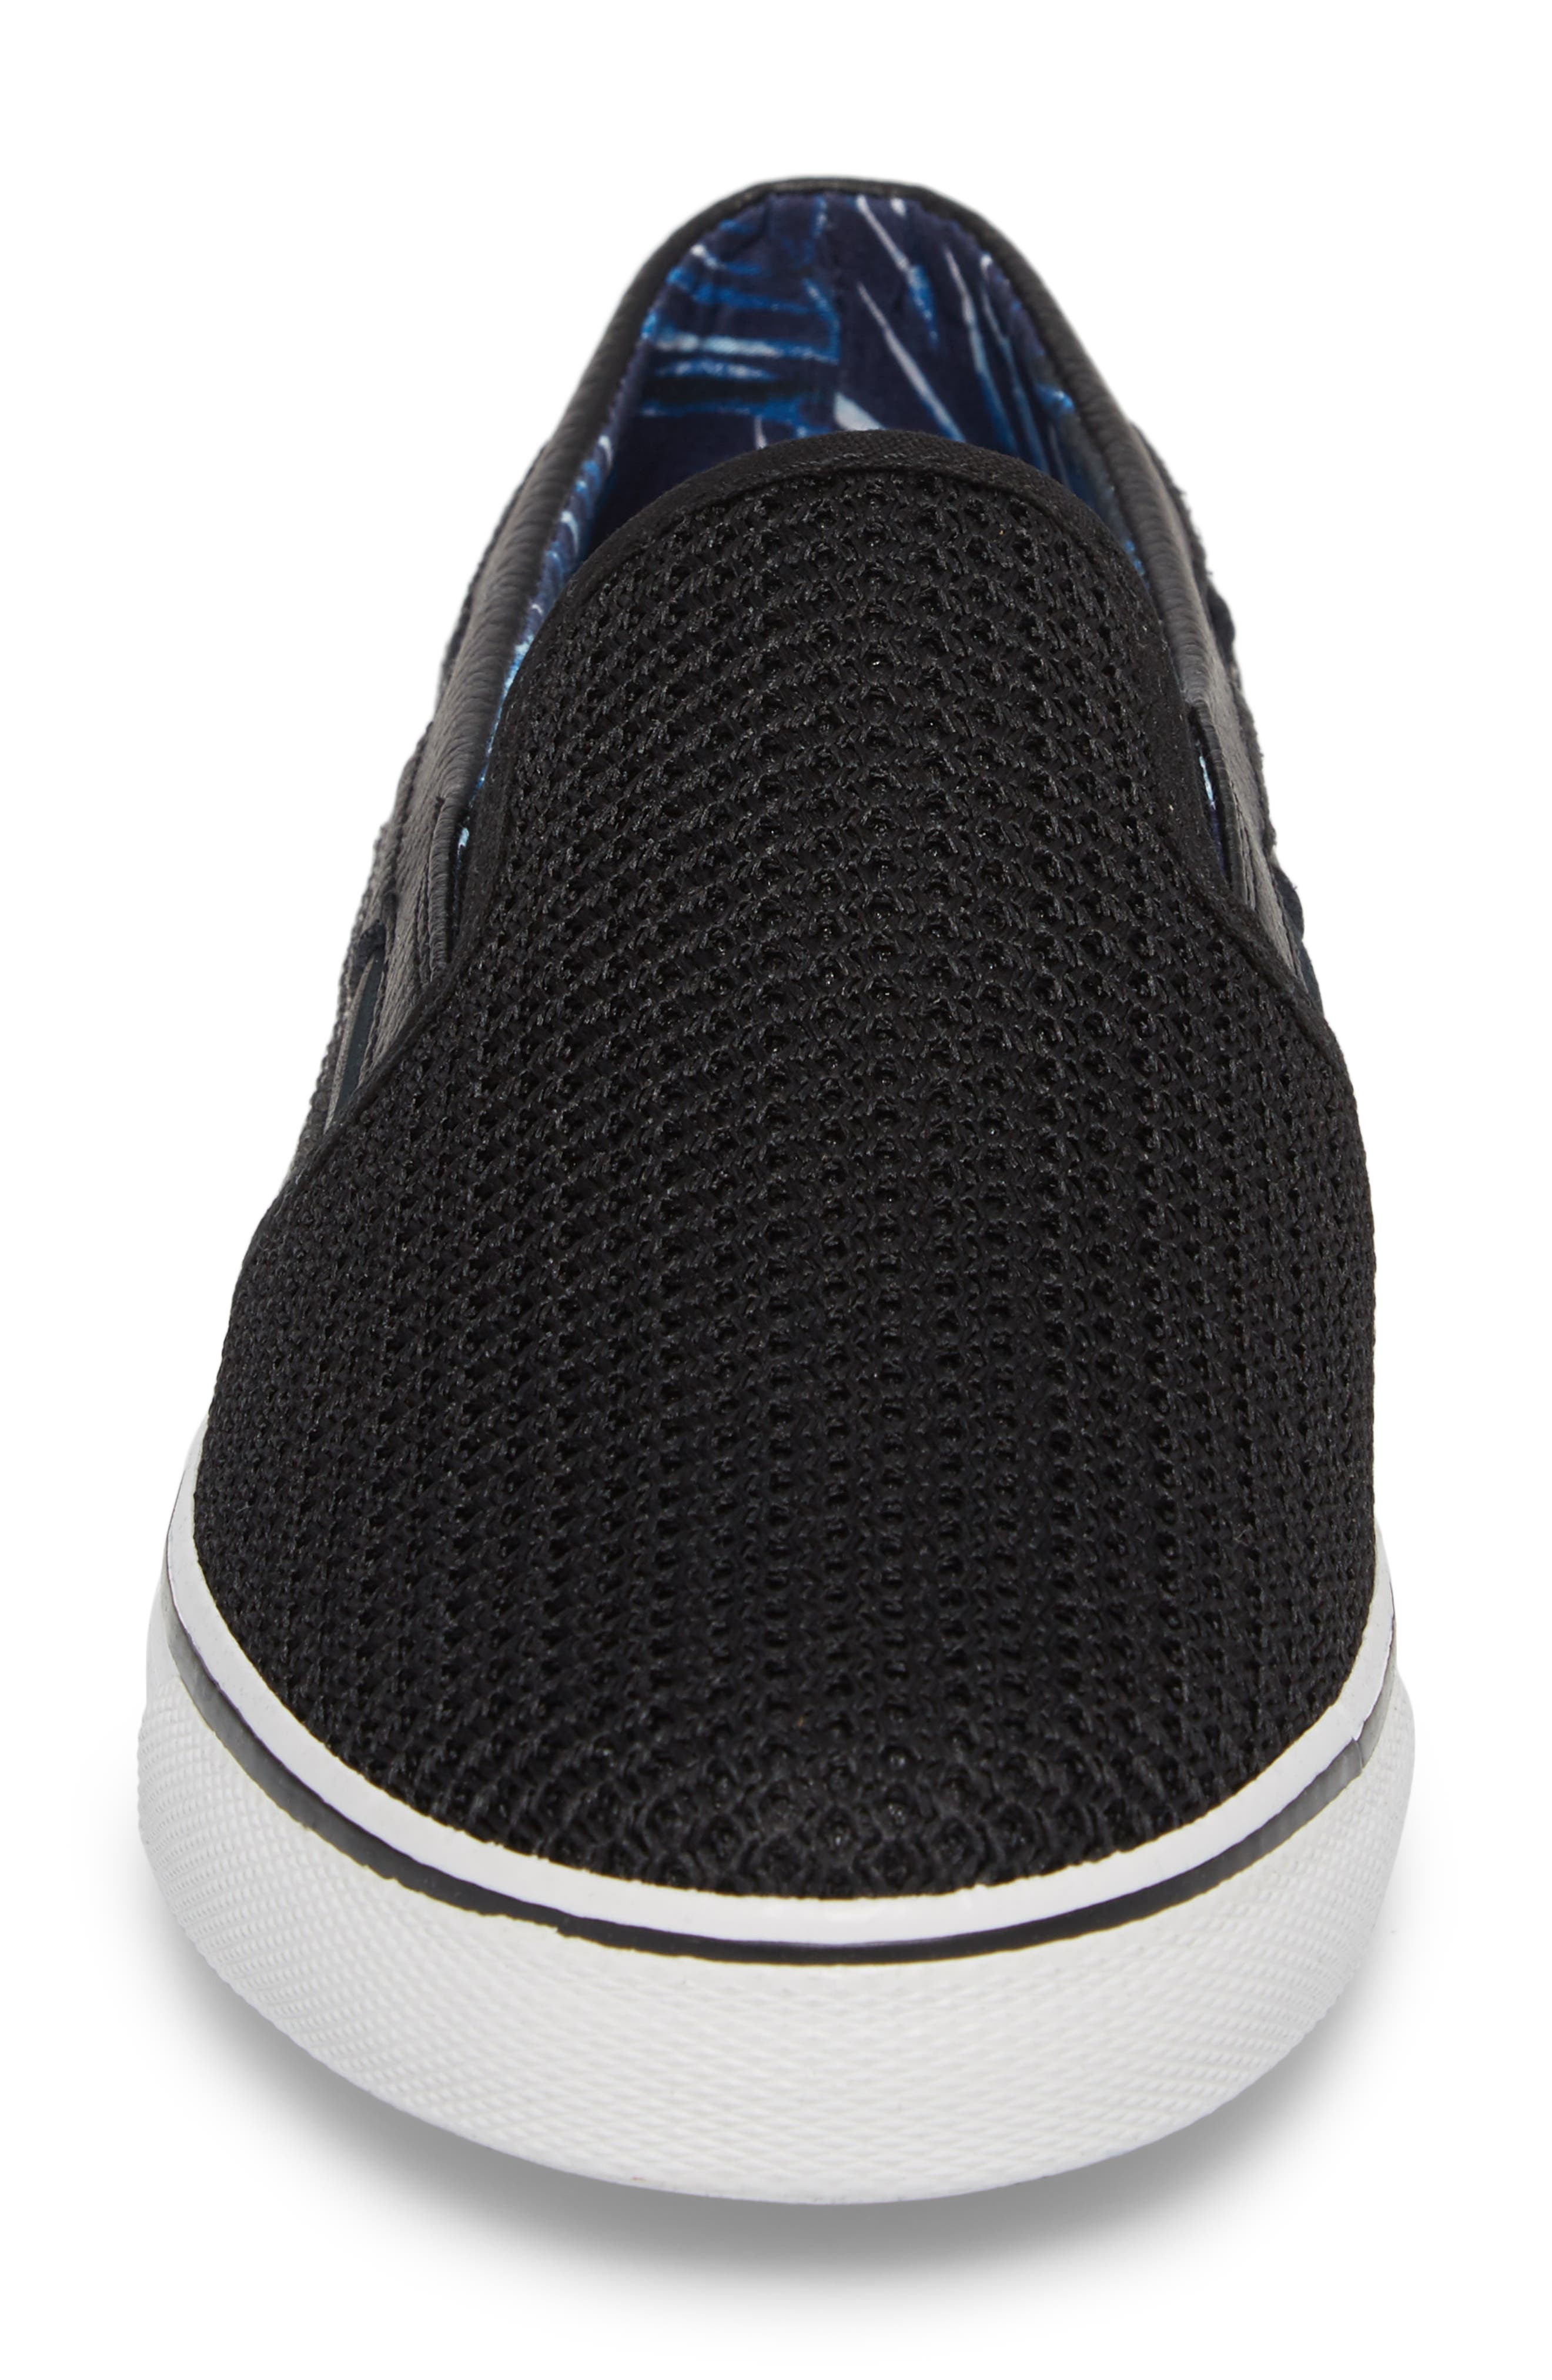 Exodus Mesh Slip-On Sneaker,                             Alternate thumbnail 4, color,                             BLACK MESH/ TEXTILE